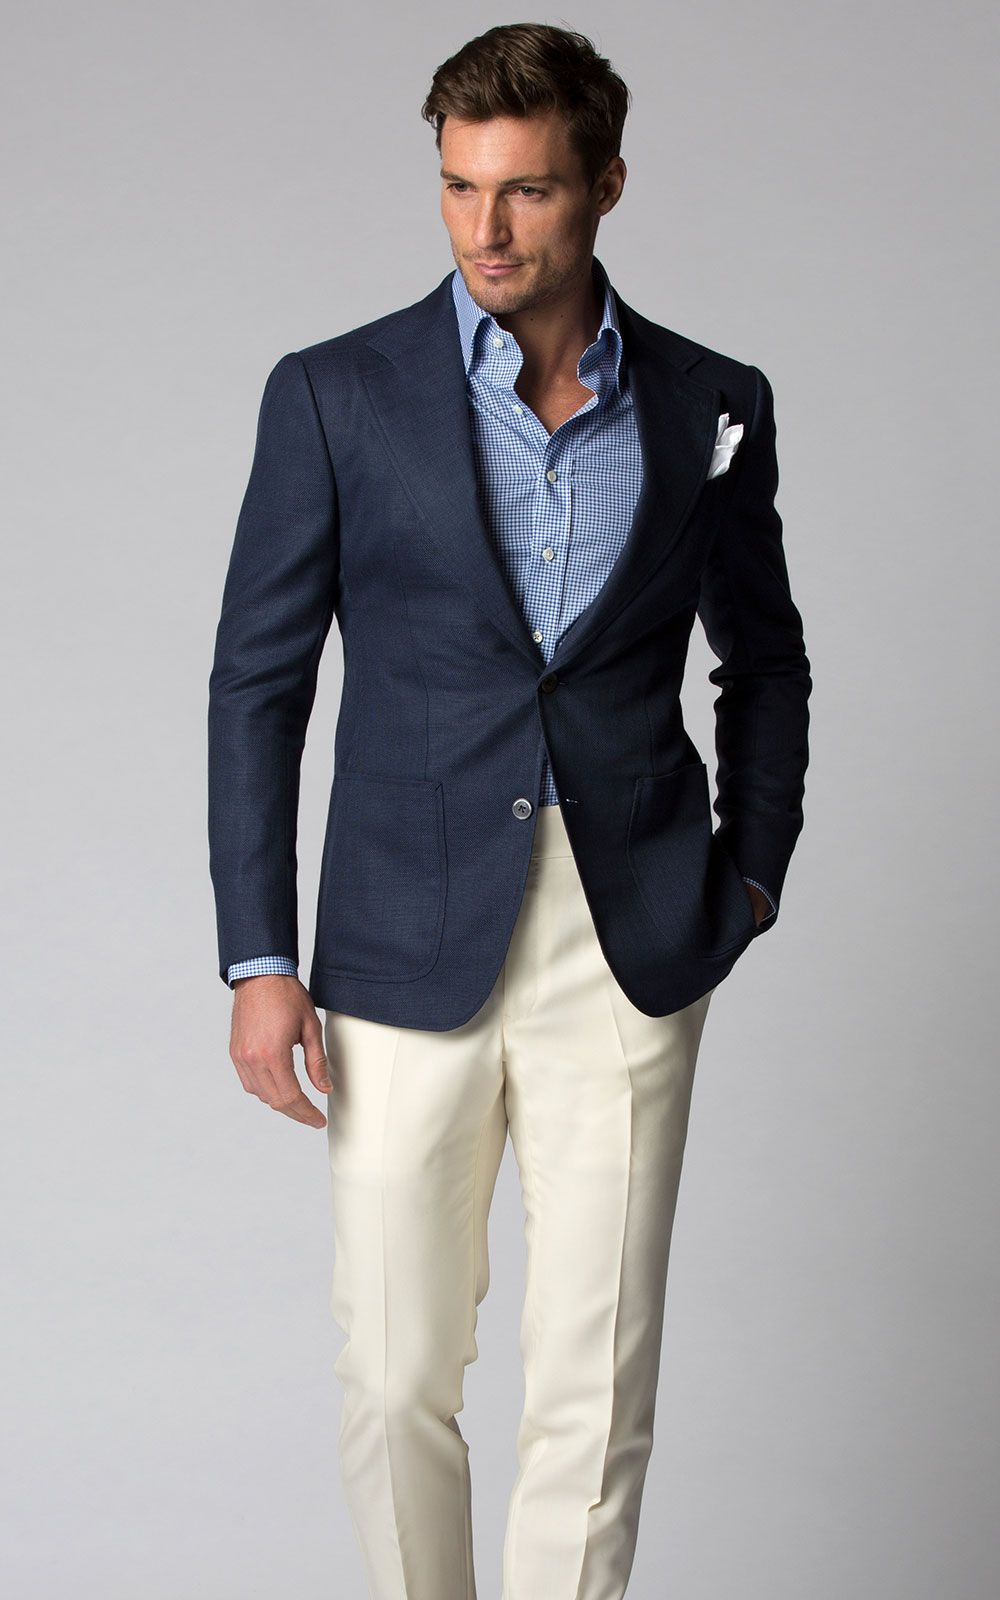 How to Wear a Sport Coat or Suit Jacket with Jeans